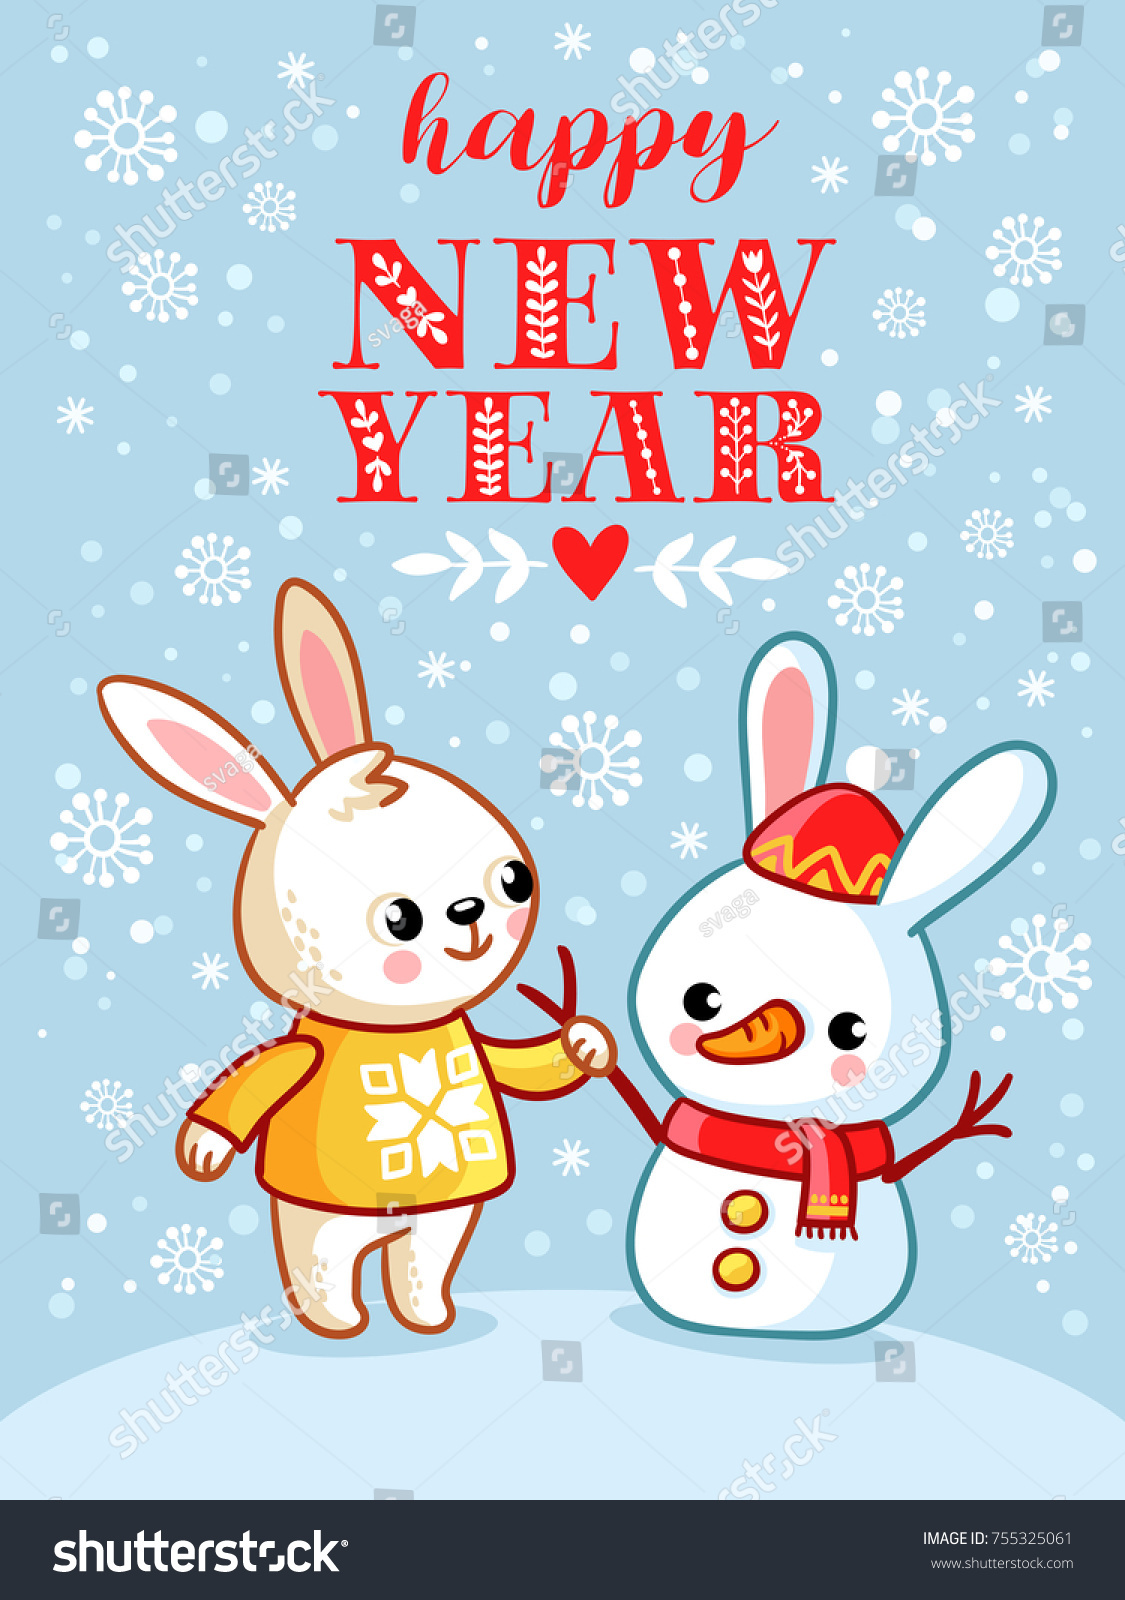 christmas and happy new year card with text and cute animals a hare and a